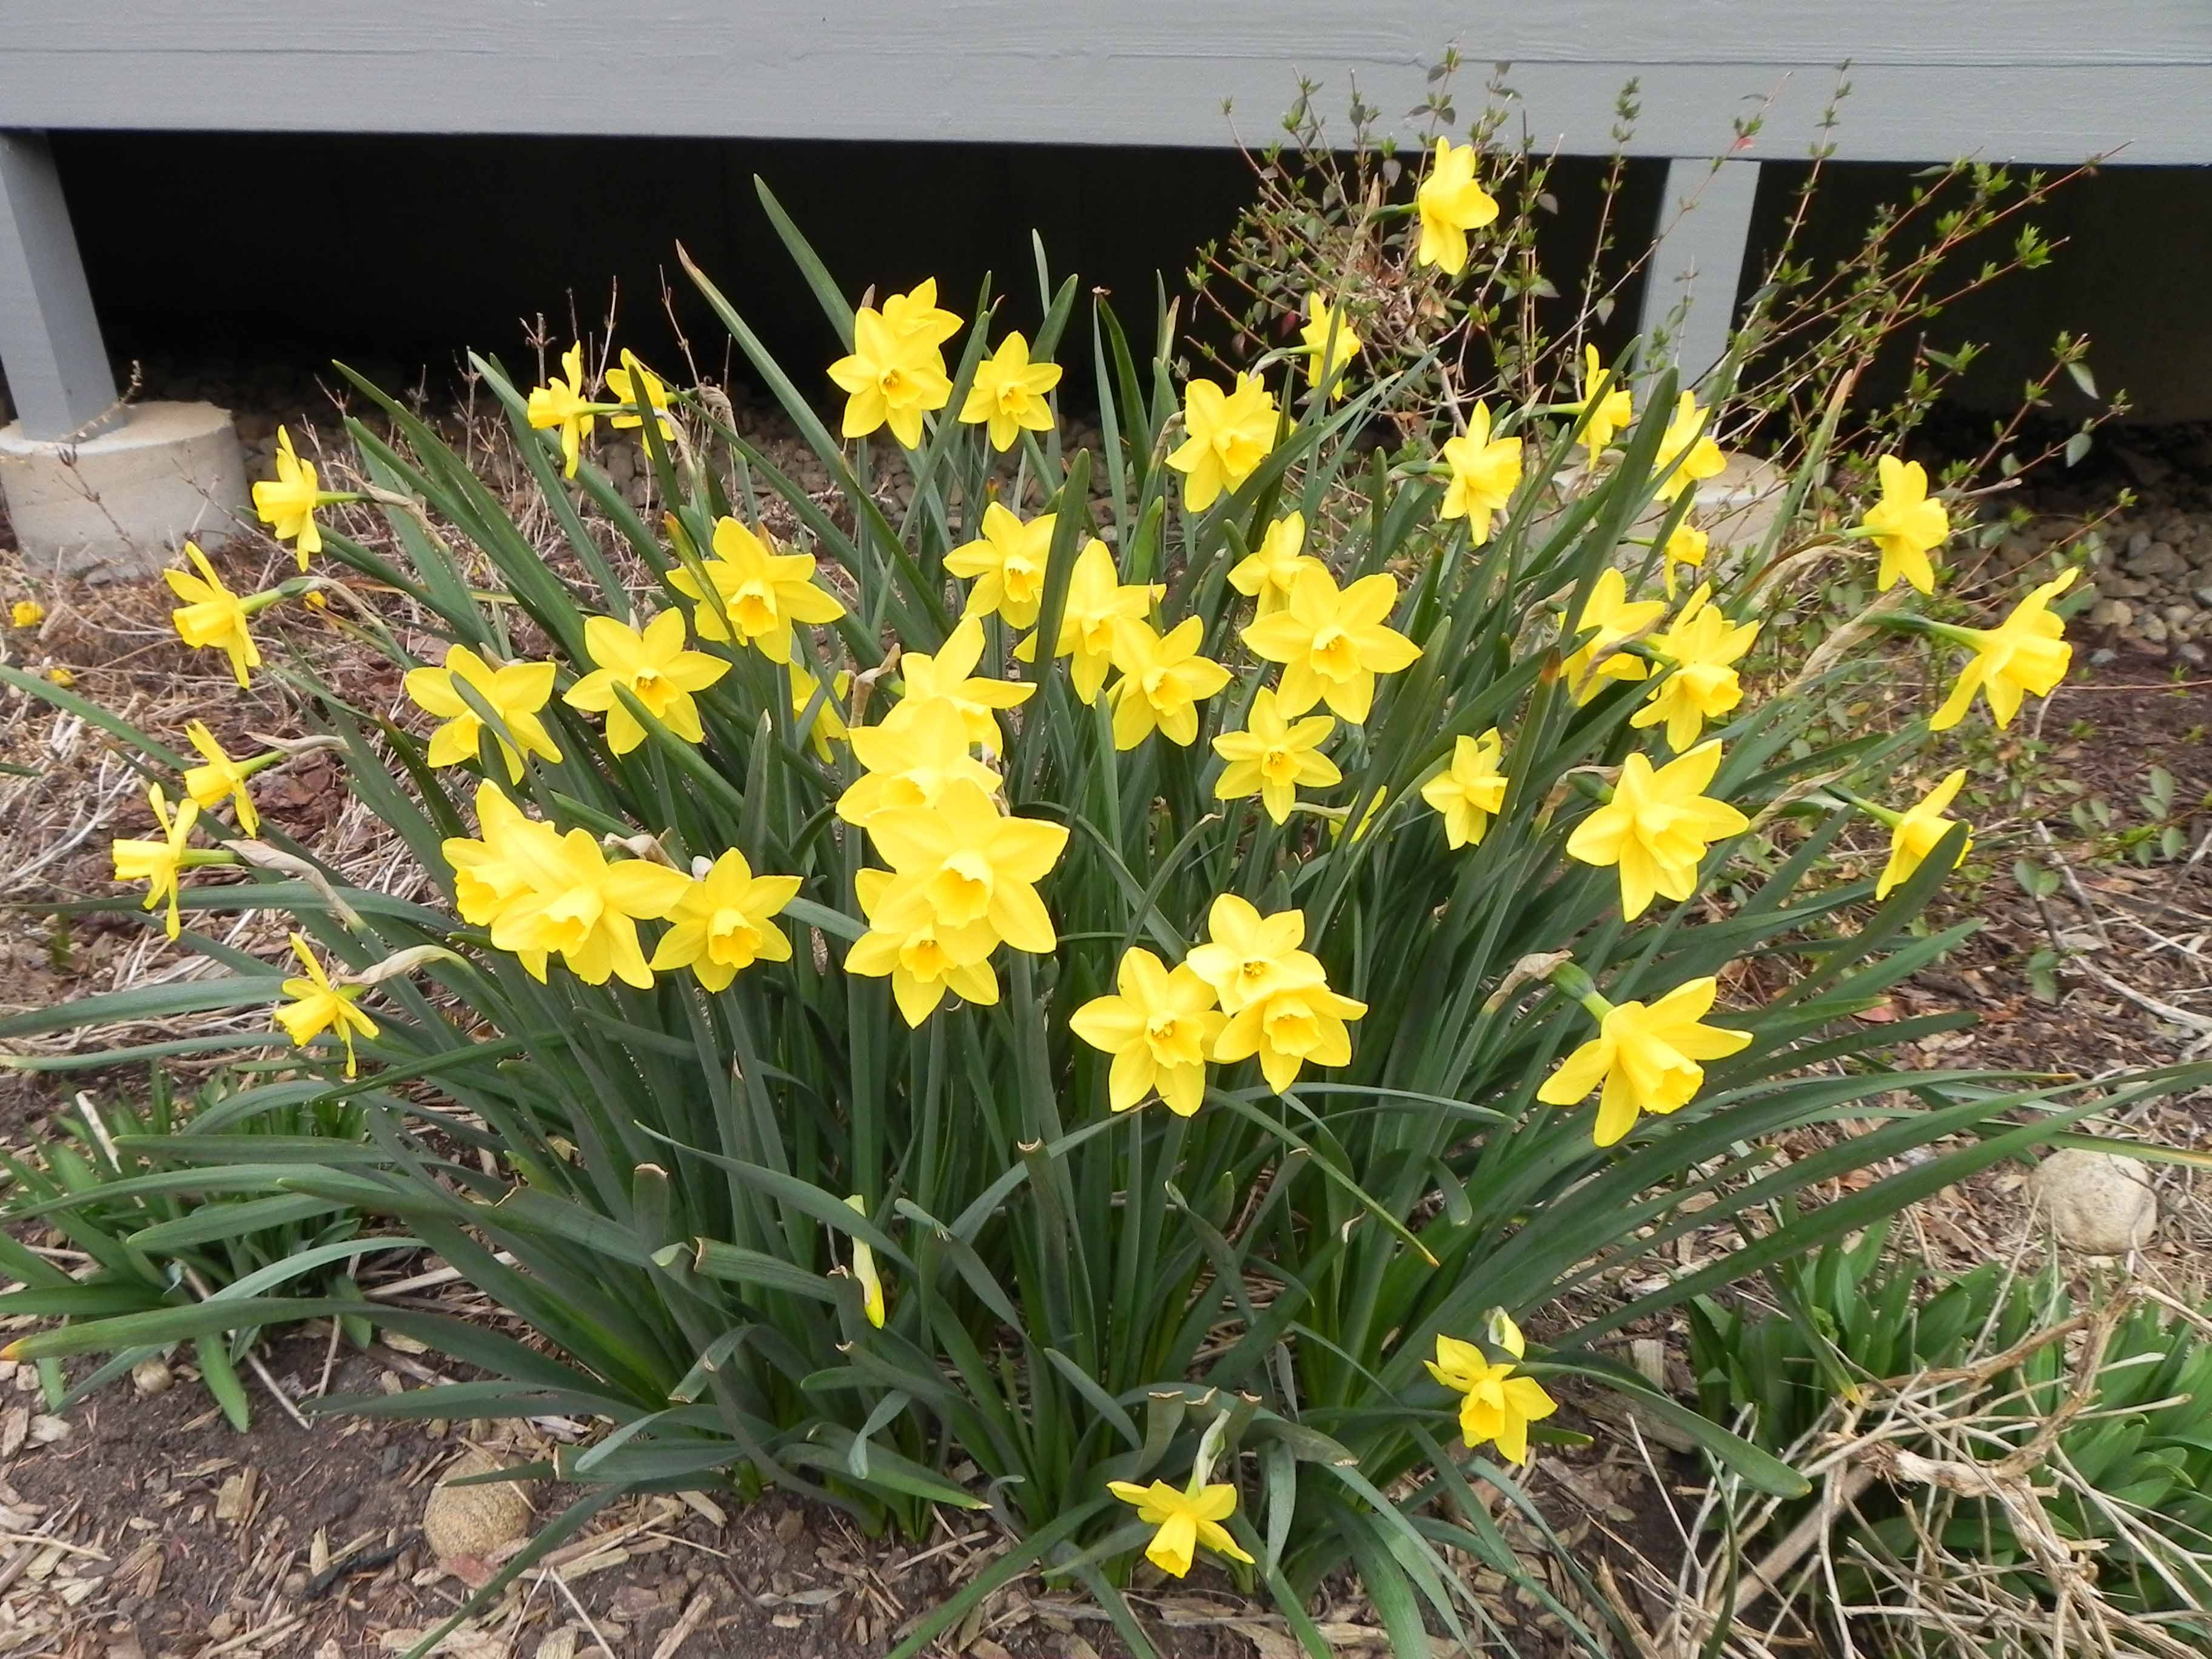 Daffodils From January To April The Real Dirt Blog Anr Blogs